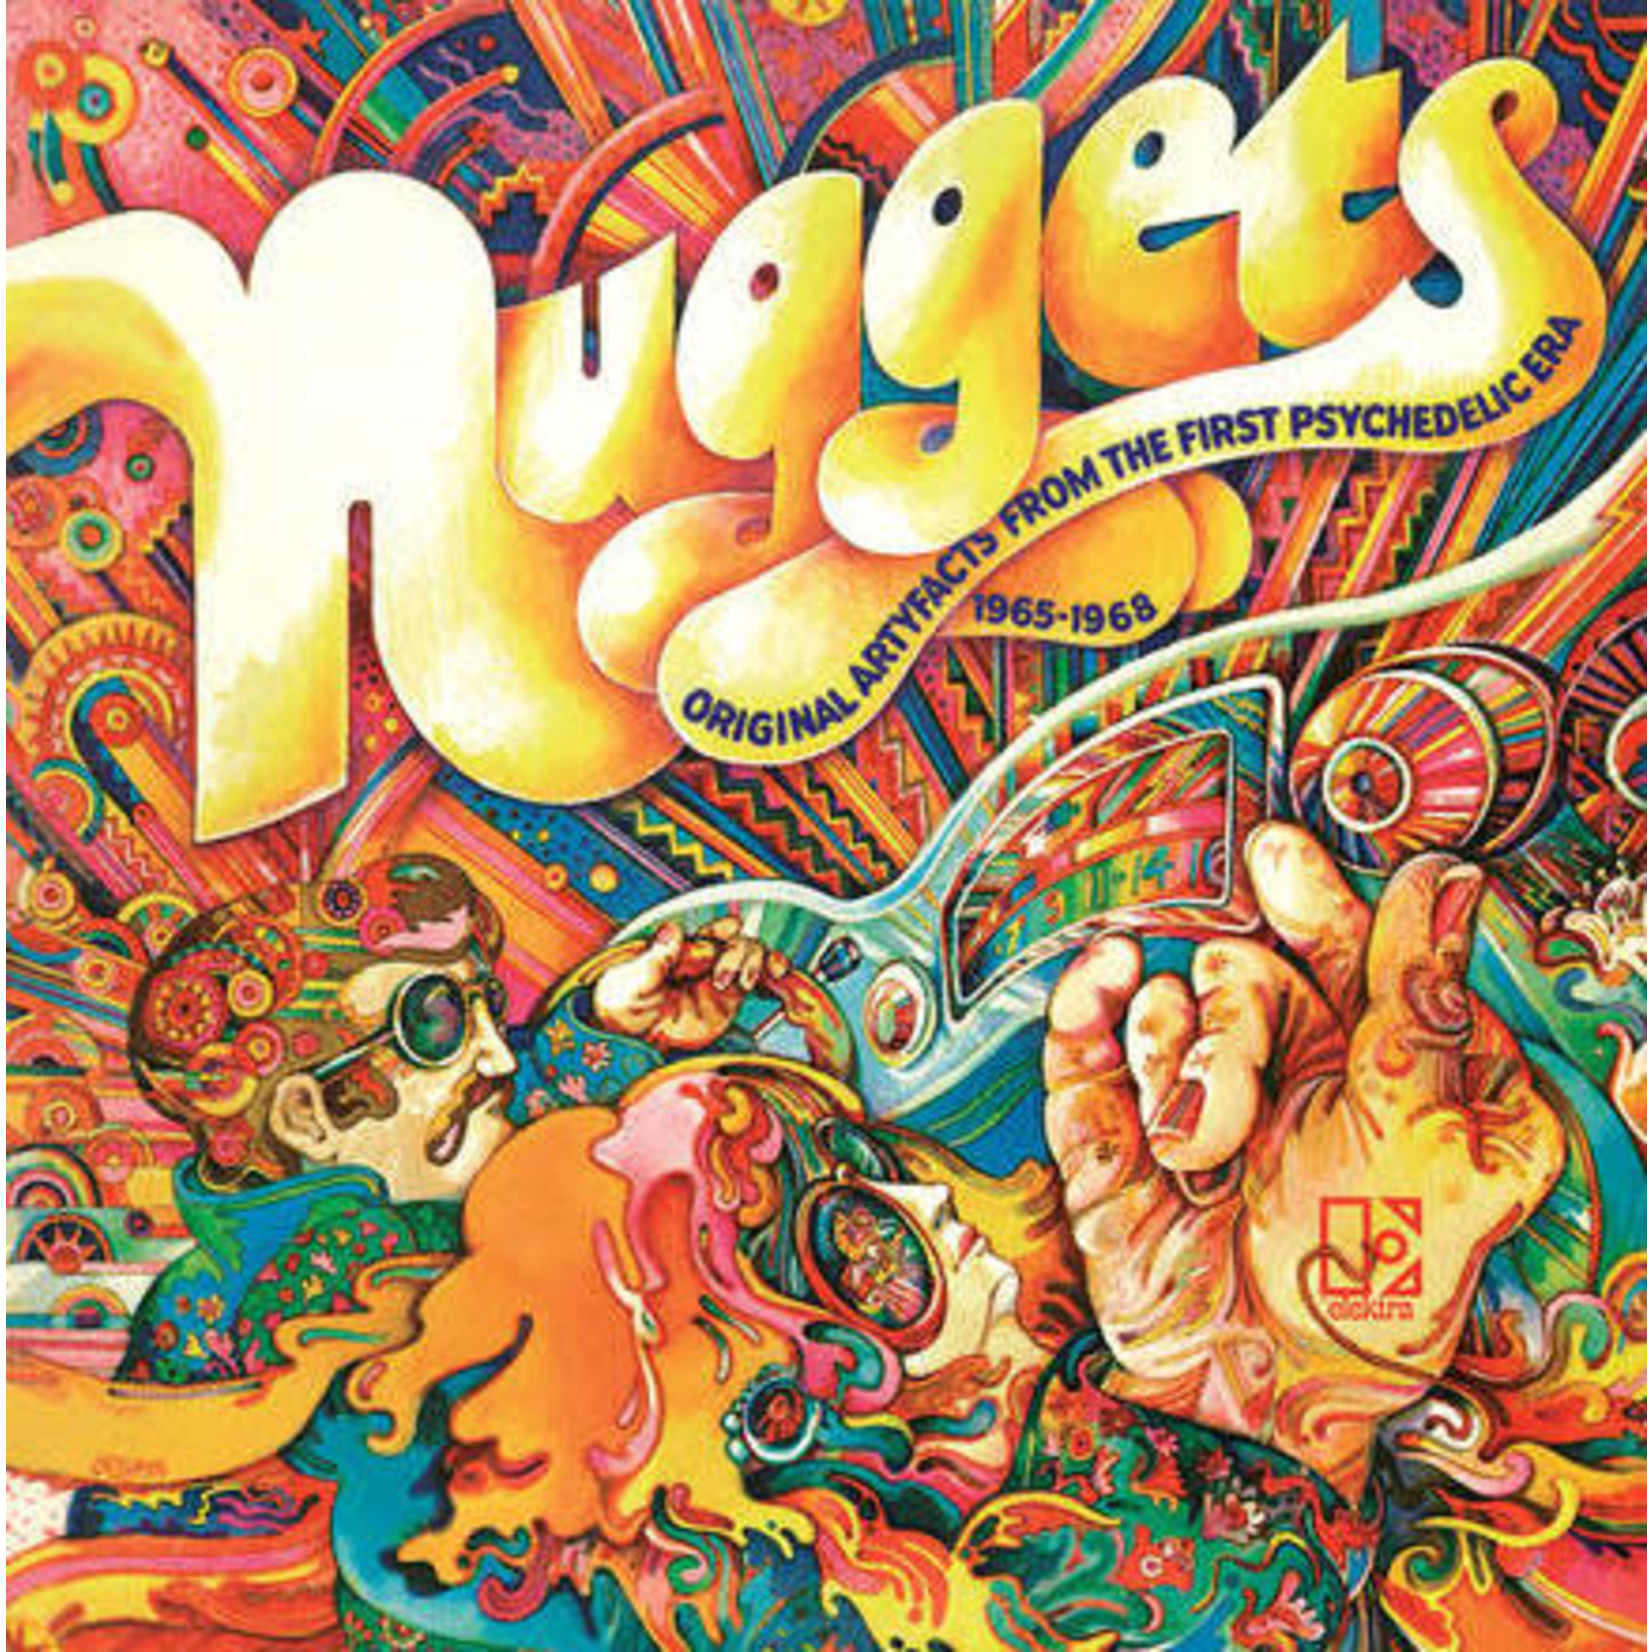 Vinyl Nuggets - Original Artyfacts From The Psychedelic Era  (2021 Remaster)